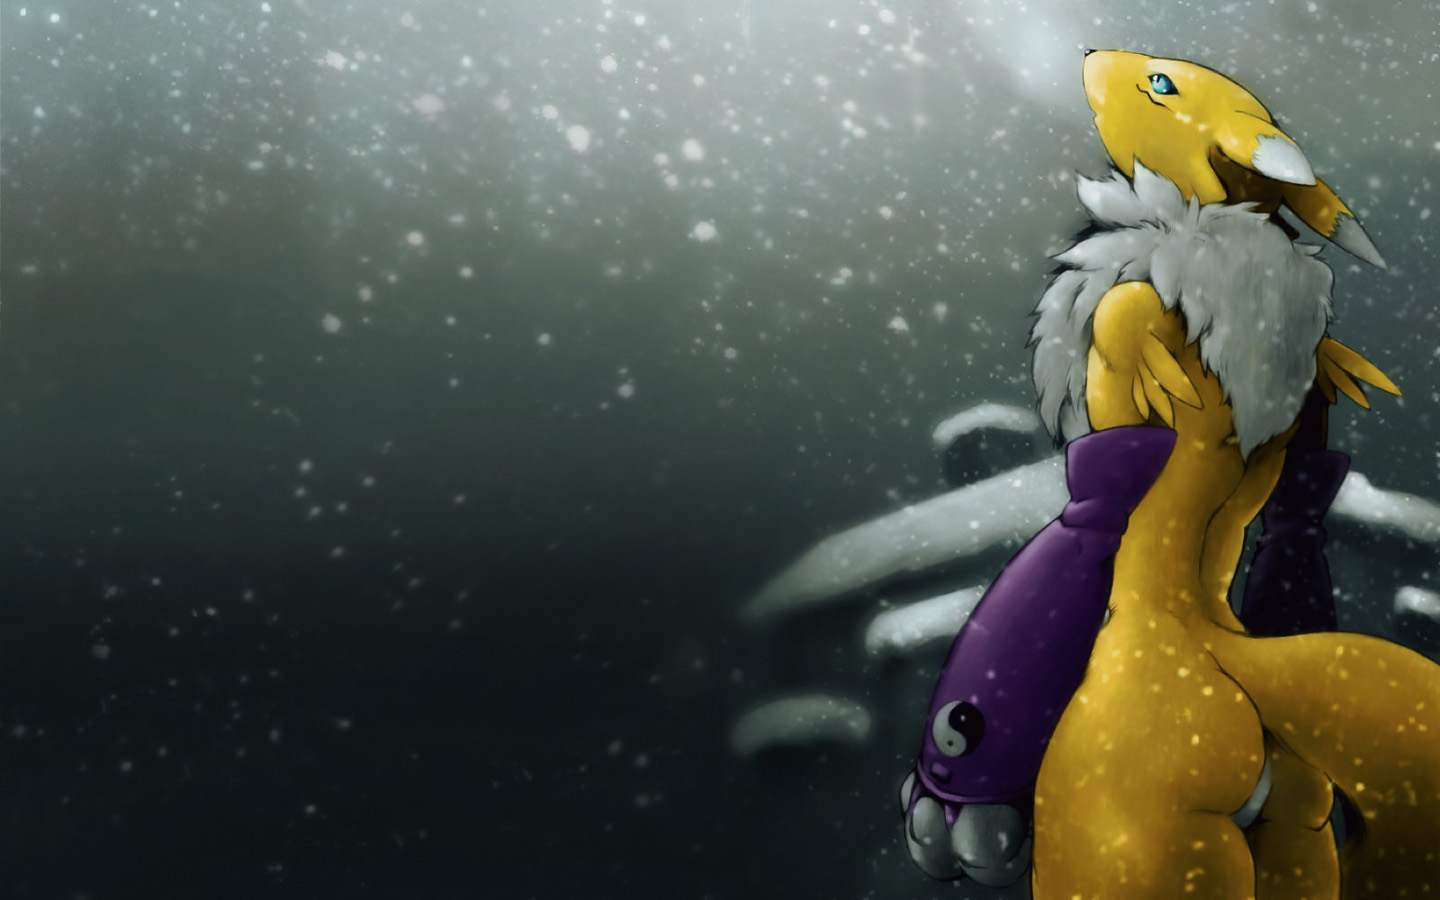 Renamon Wallpaper Digimon